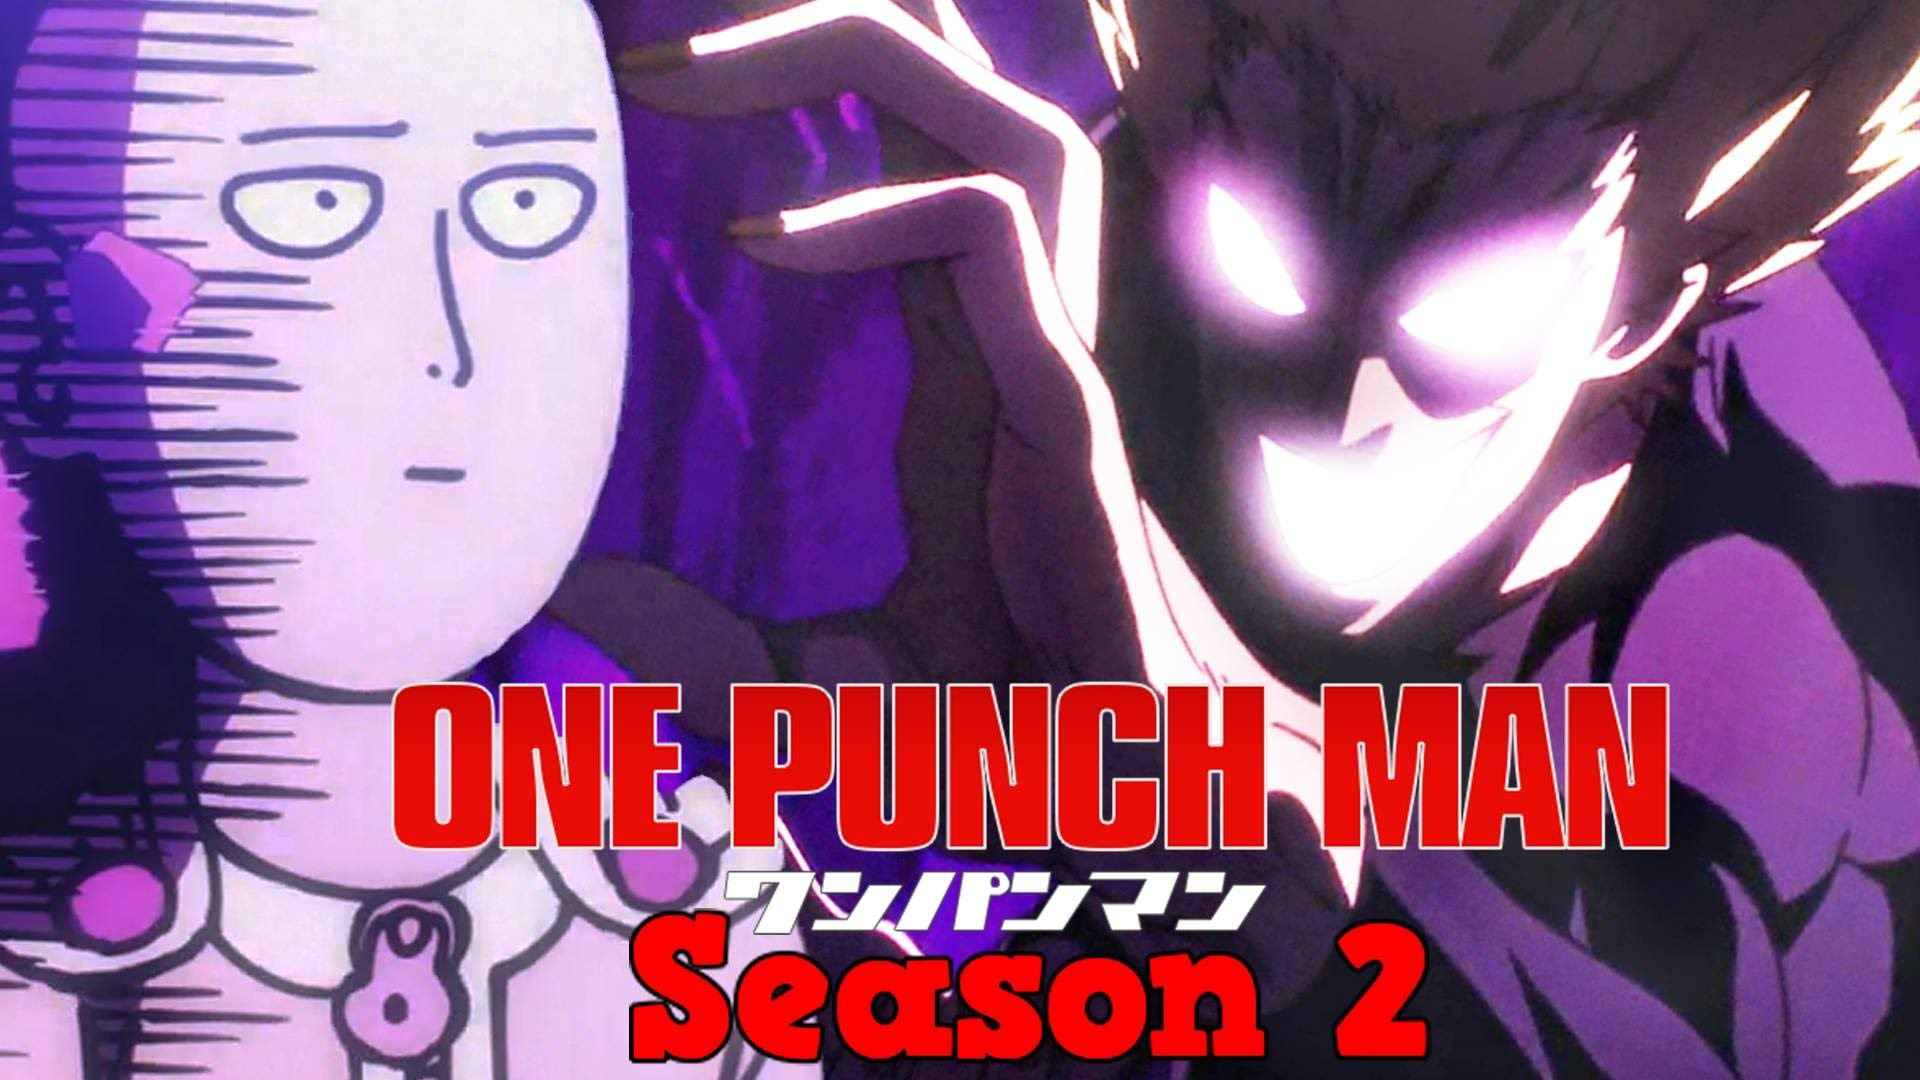 One punch man season 2 folge 5